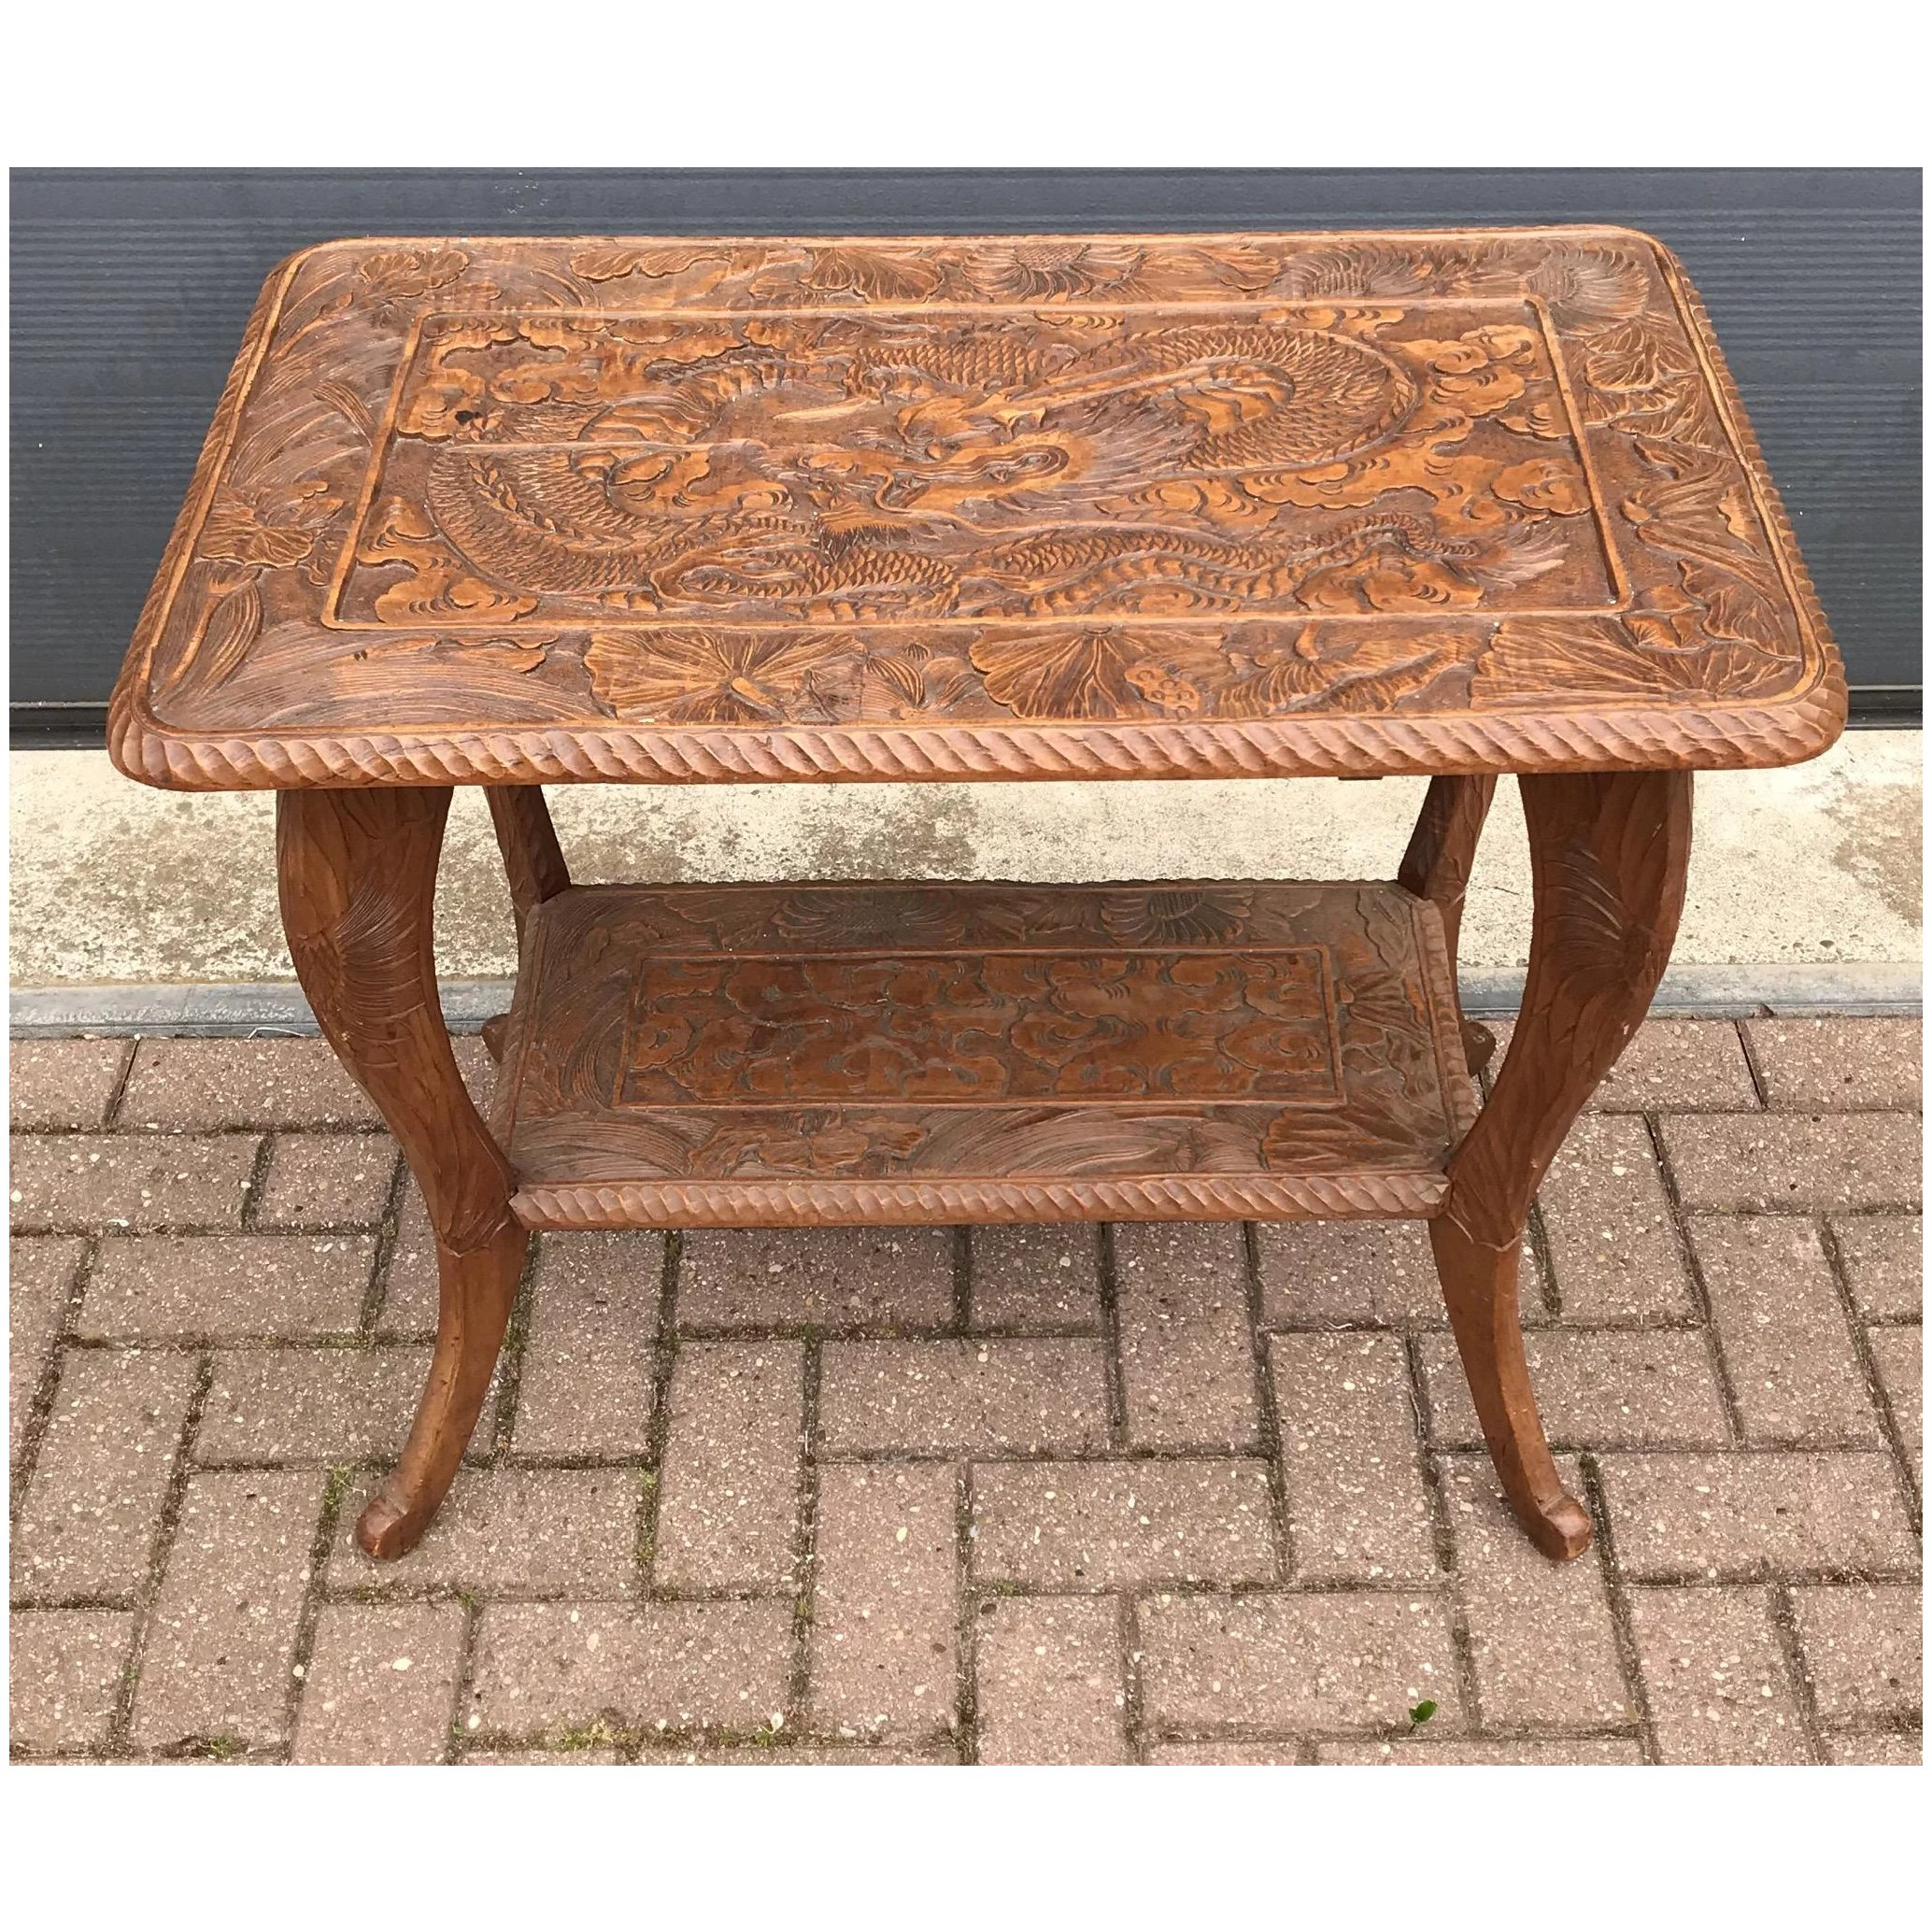 Art Nouveau Carved Wood Table With Sunflowers And Dragon Europe Antiques Collectibles And Decorations Shop Ruby Lane